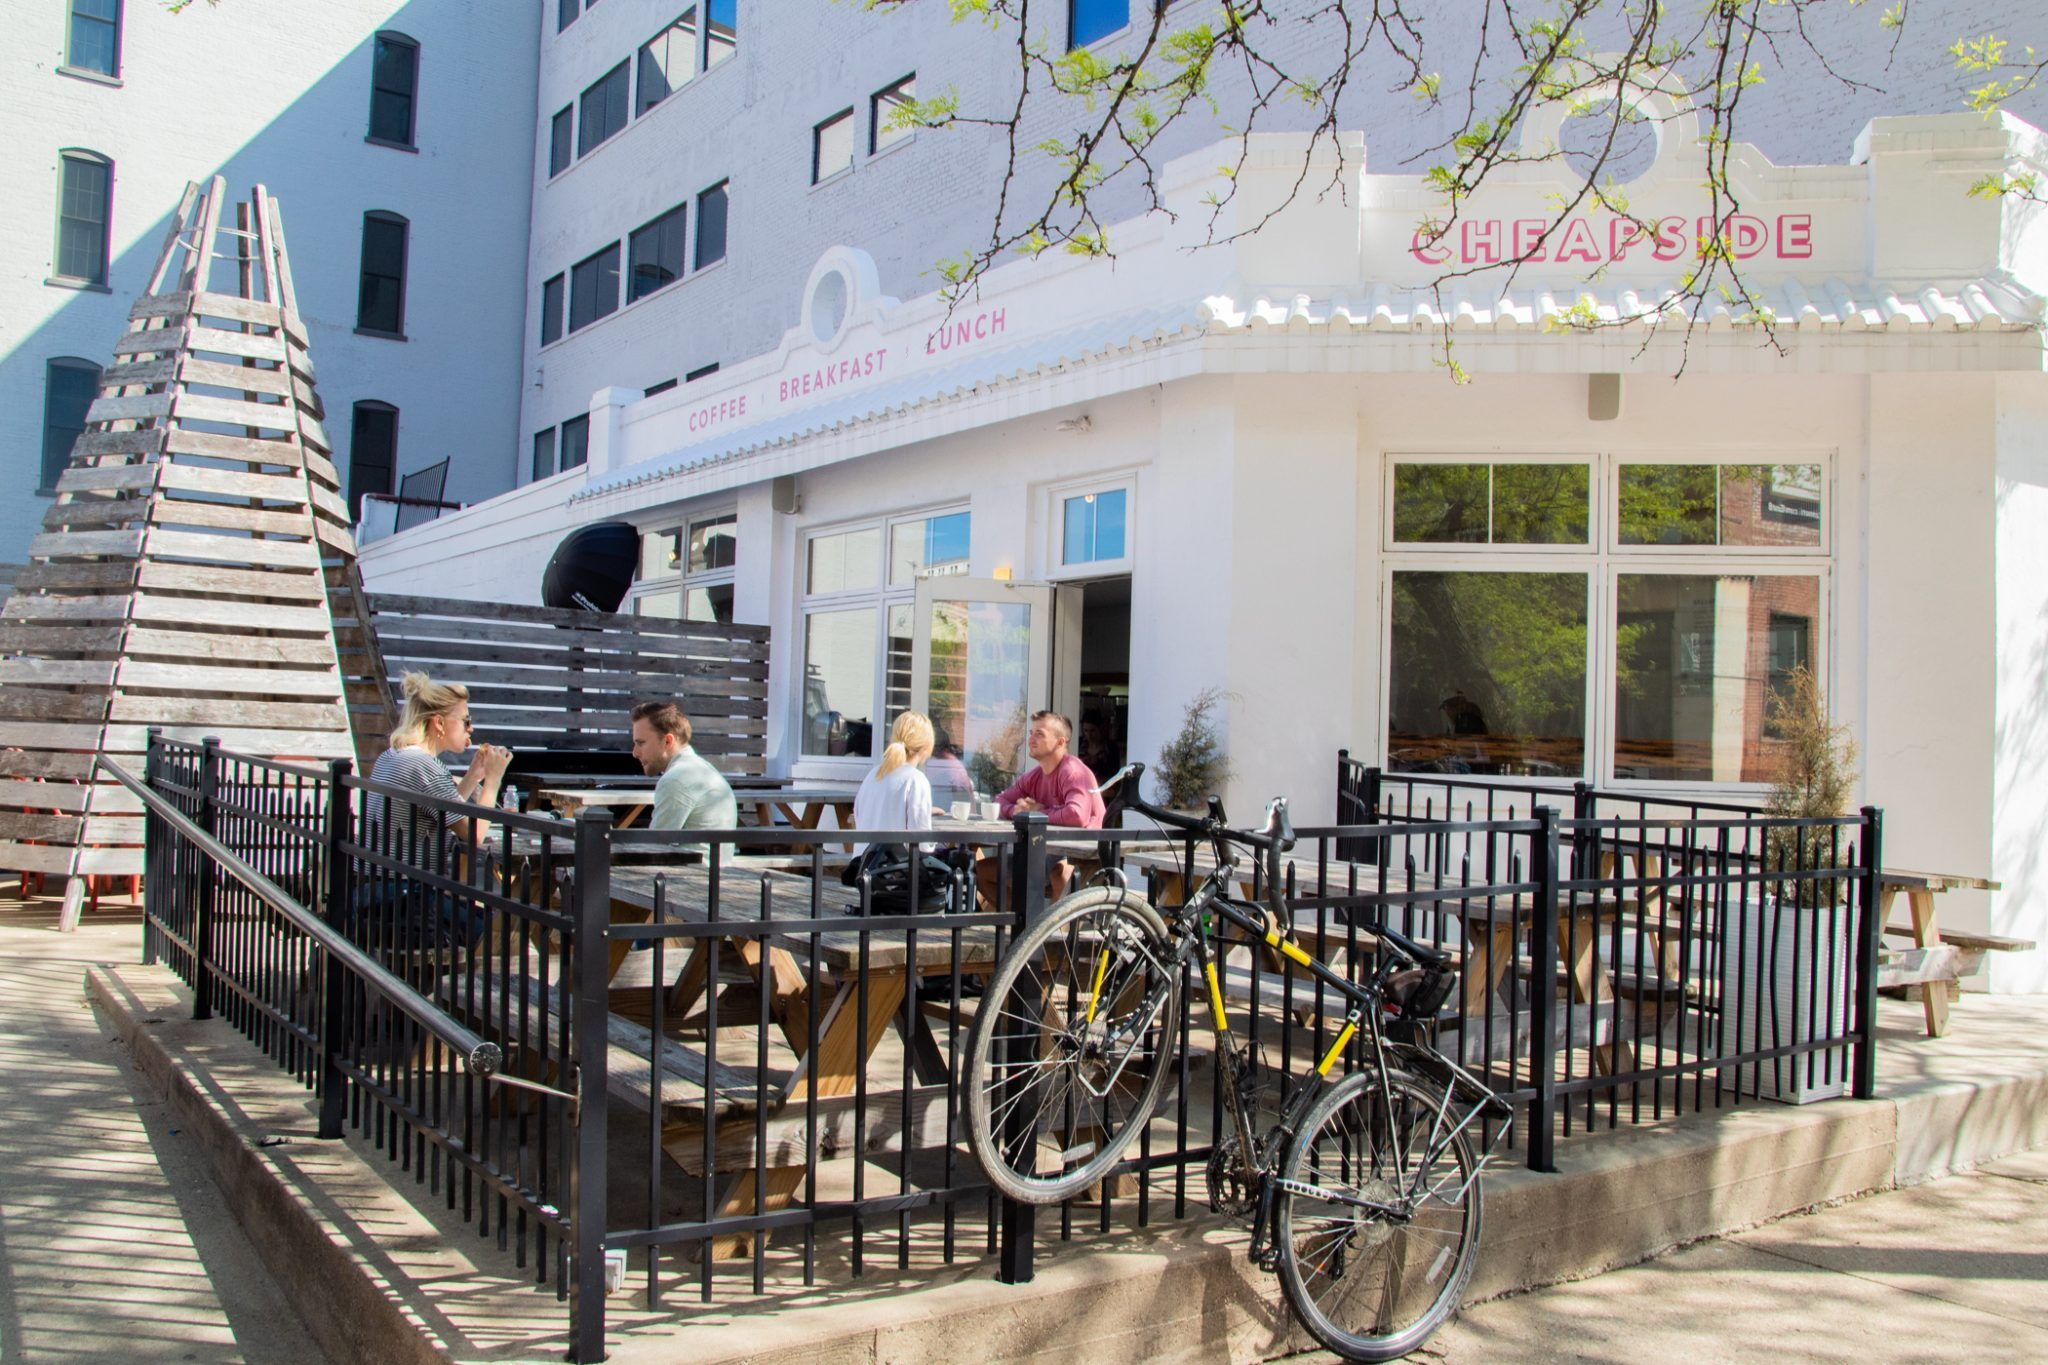 Cheapside Cafe 326 E Eighth St Downtown With A Menu Featuring Kale Salads Breakfast Sandwiches With Pime Cincinnati Restaurants Restaurant Beautiful Patios